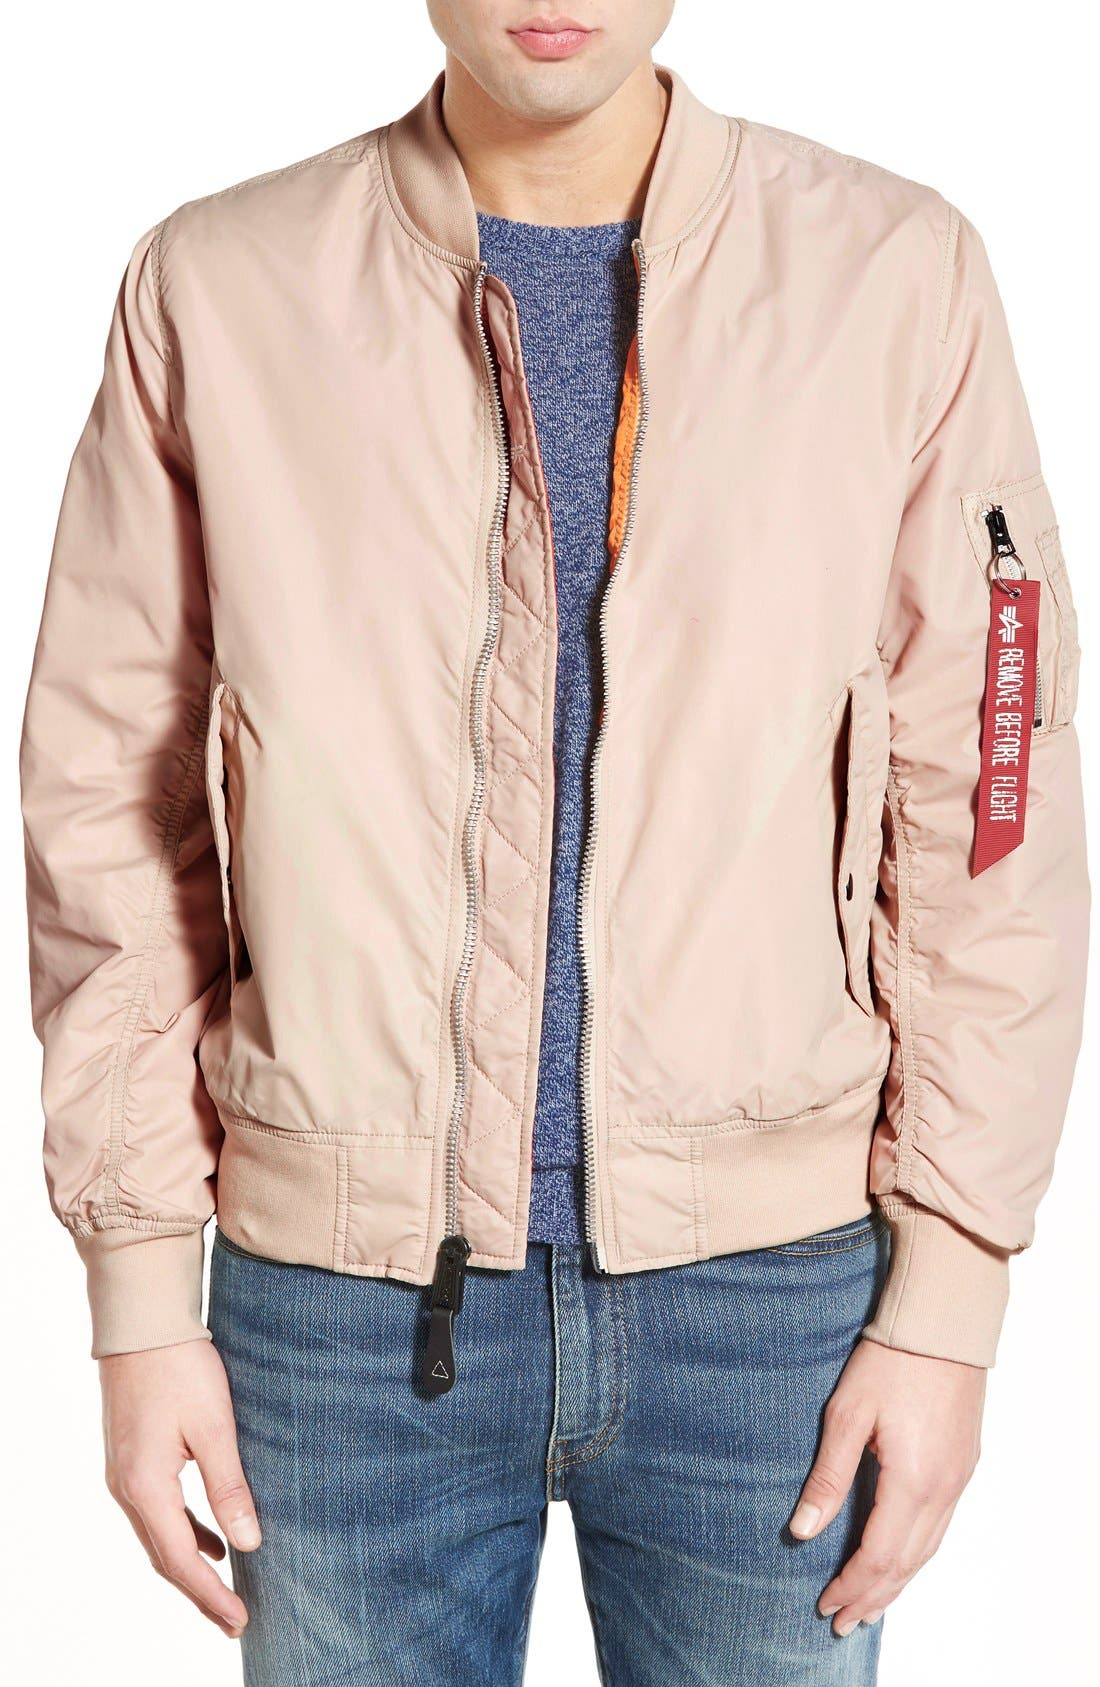 LB-2 Scout Reversible Flight Jacket,                             Main thumbnail 4, color,